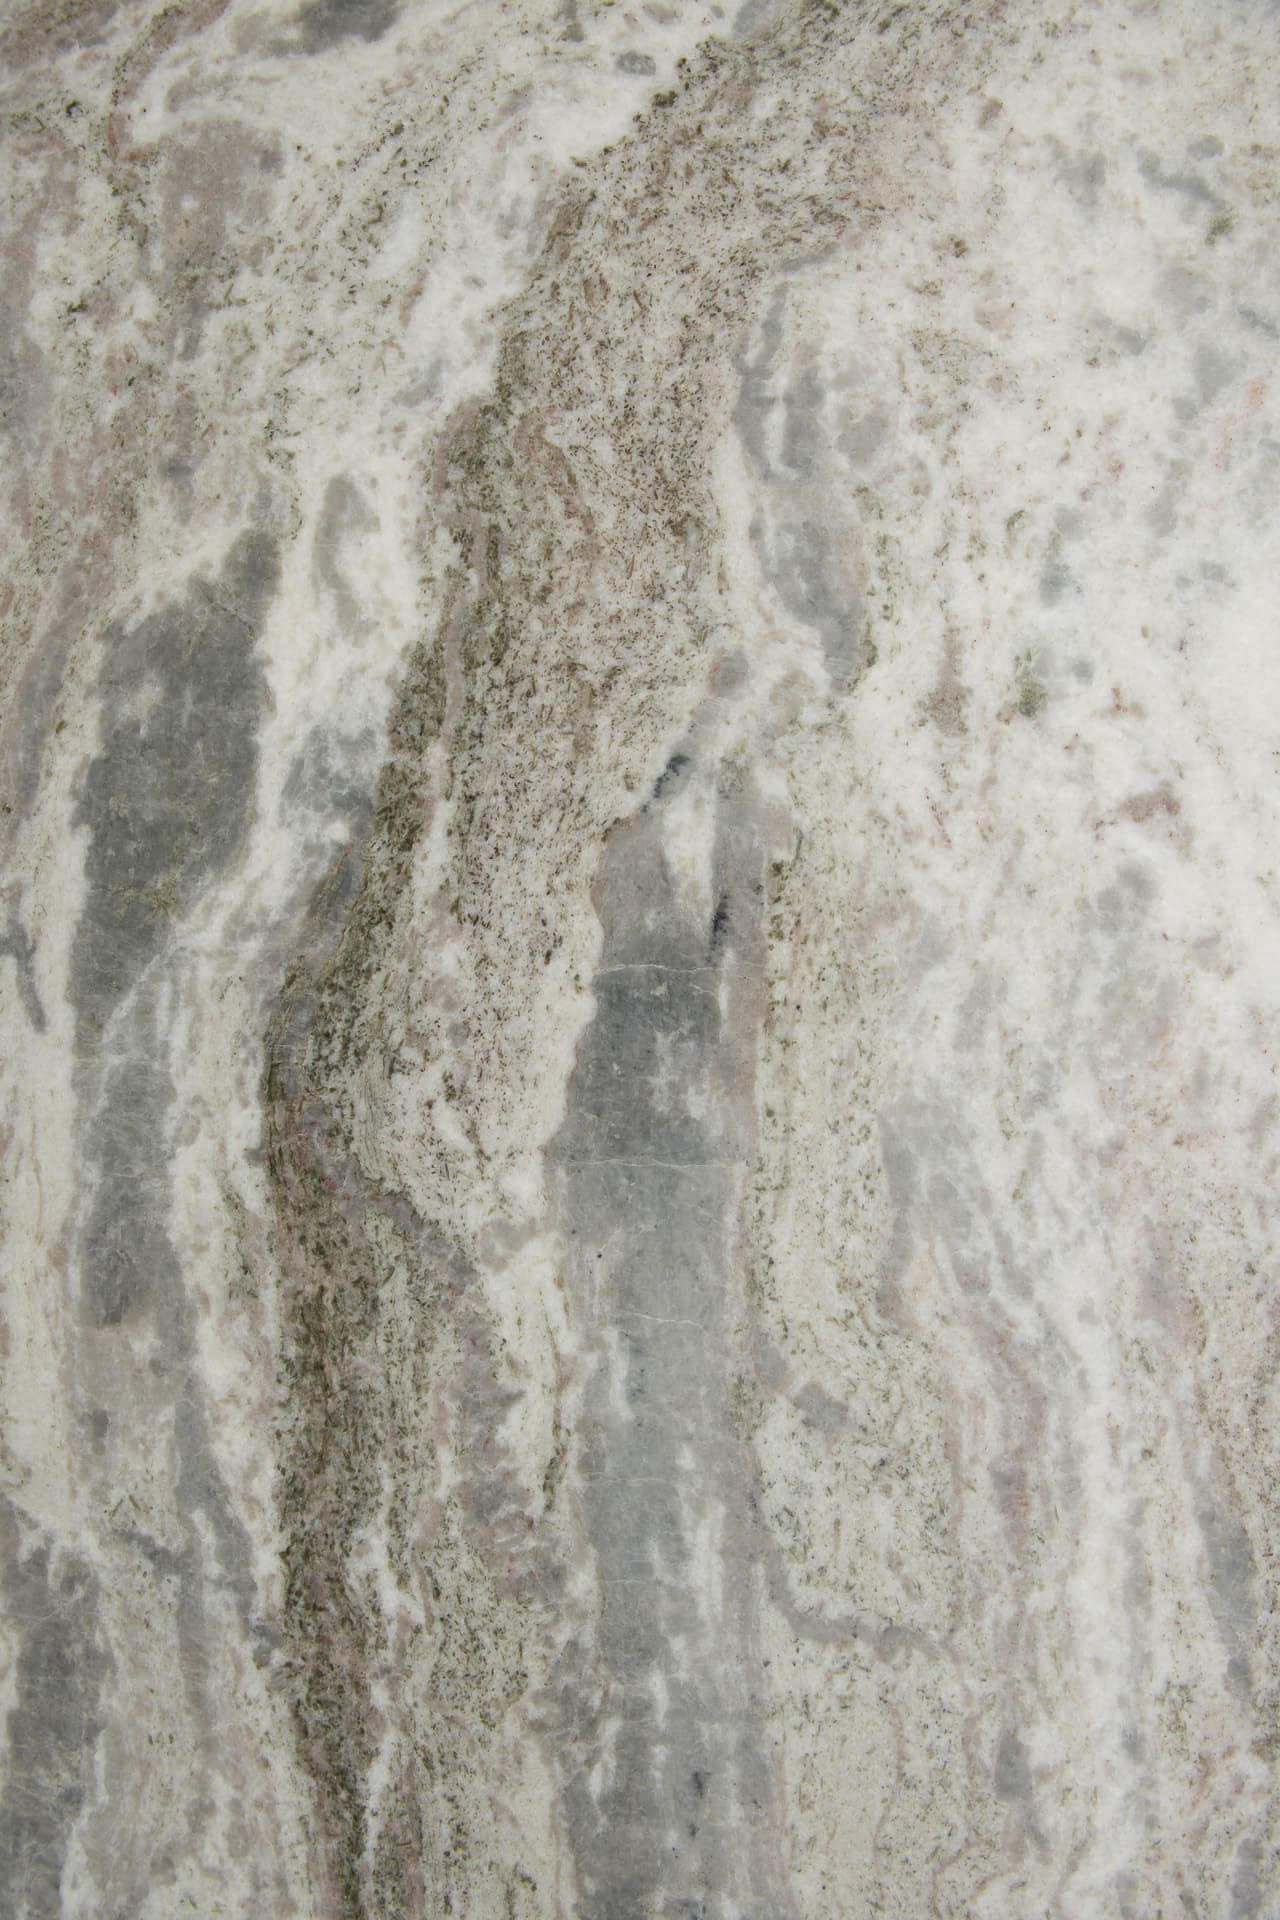 fantasy brown 4 cu countertop - by Magnolia Countertops. A Countertop fabricator of Granite Countertops, Marble Countertops, and Quartz Countertops in Cookeville and Crossville TN.